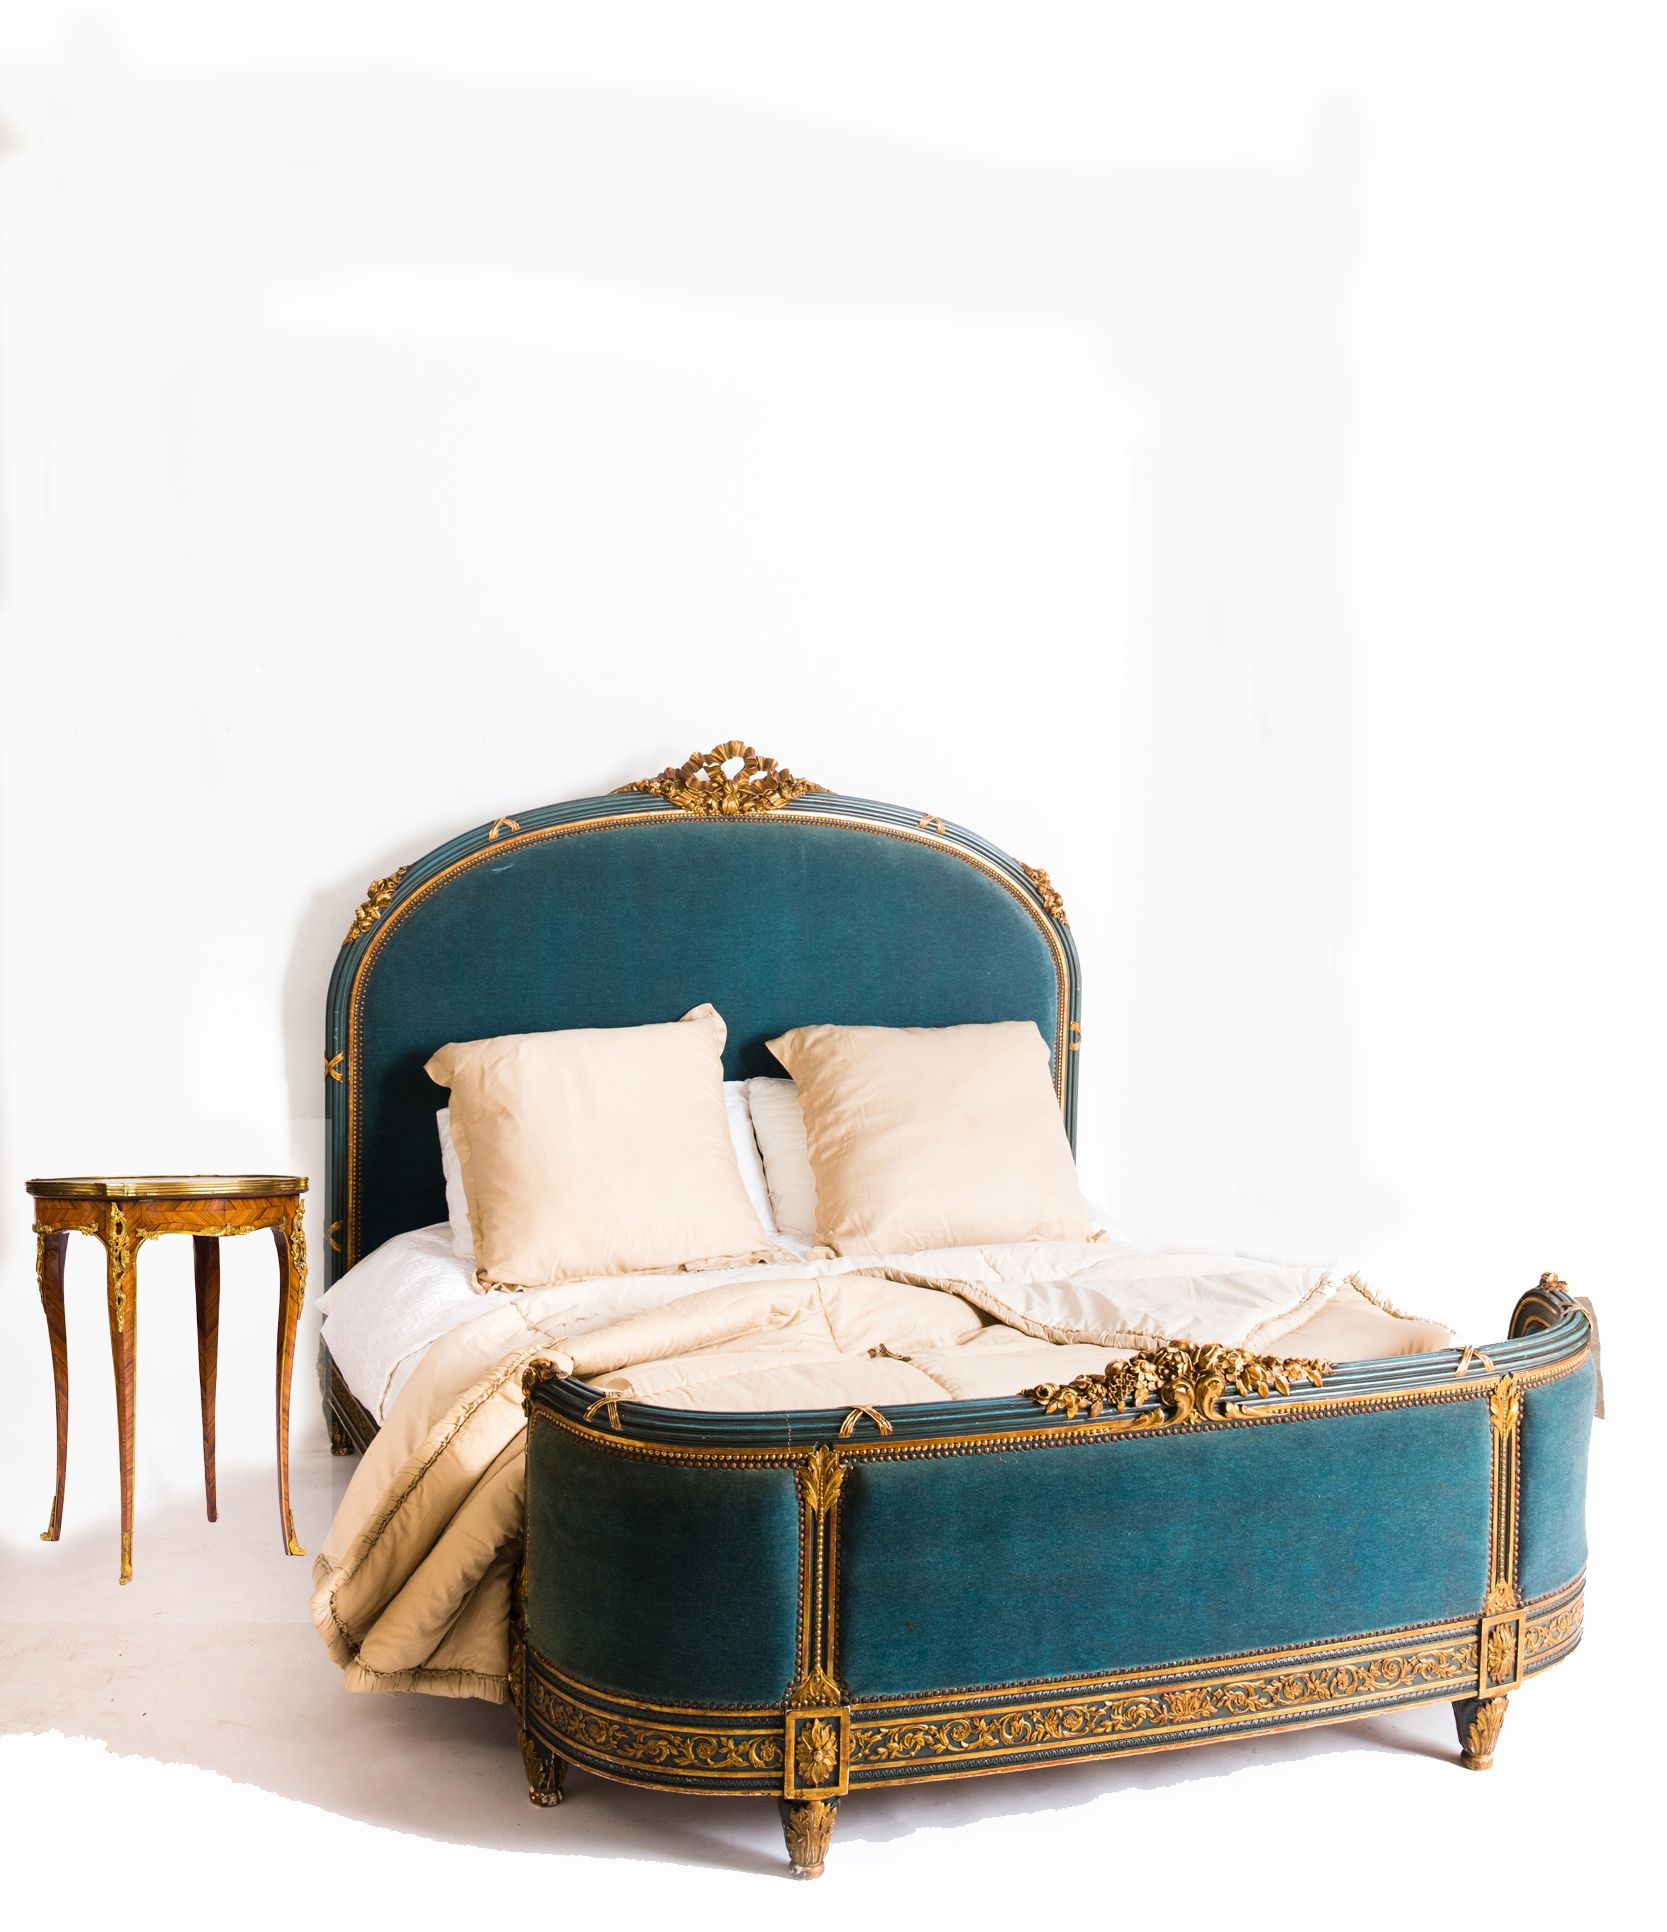 Exceptional 19th century French Louis XVI Queen Size Bed